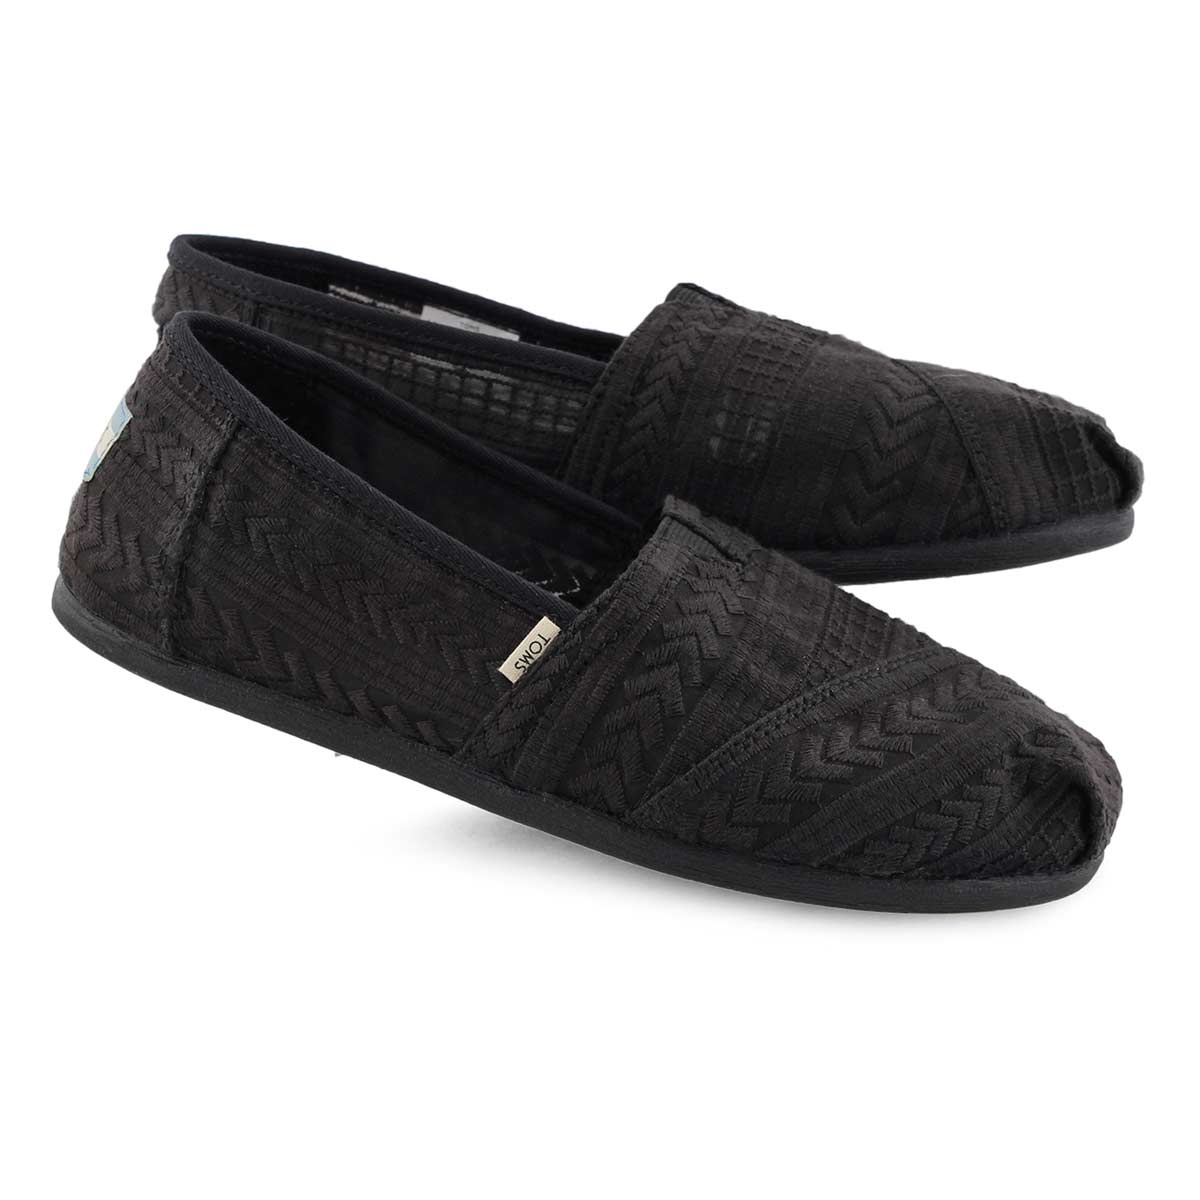 835b2a80b91d TOMS. (3). Women's ALPERGATA black casual loafers. $69.99. QUICK VIEW Add  To Bag